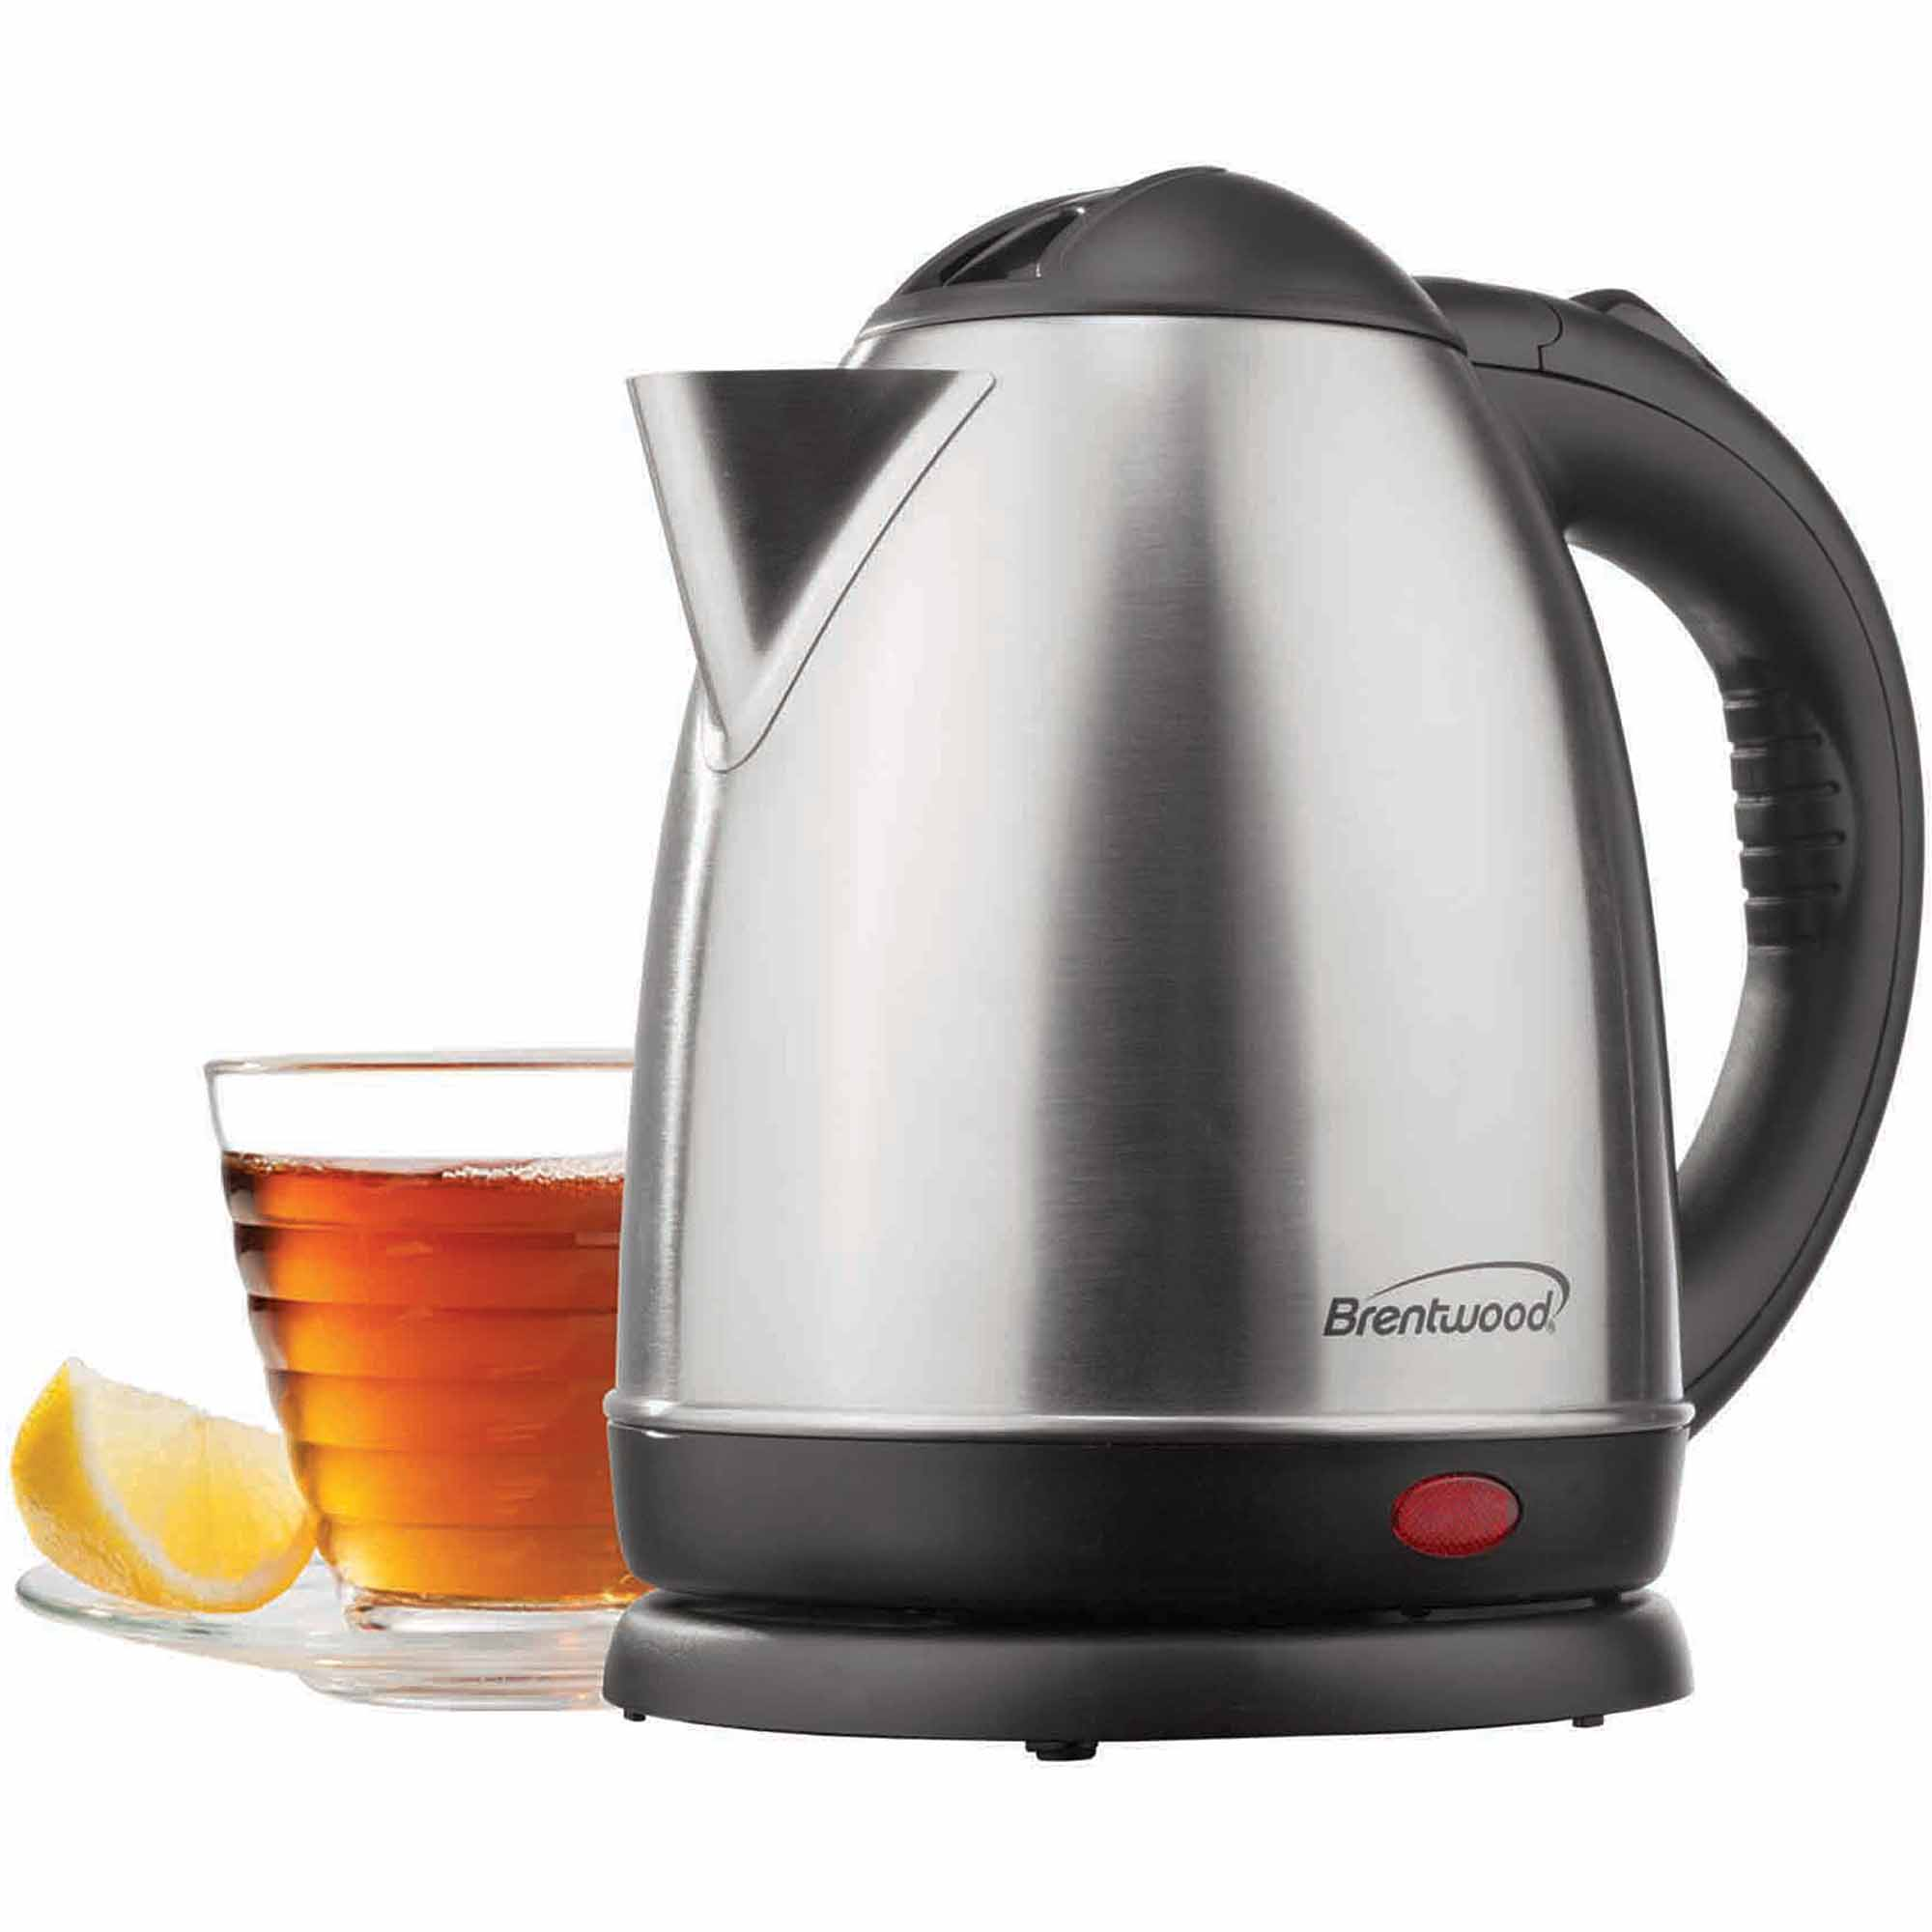 Brentwood KT-1780 1,000W 1.5L Stainless Steel Electric Cordless Tea Kettle, Brushed